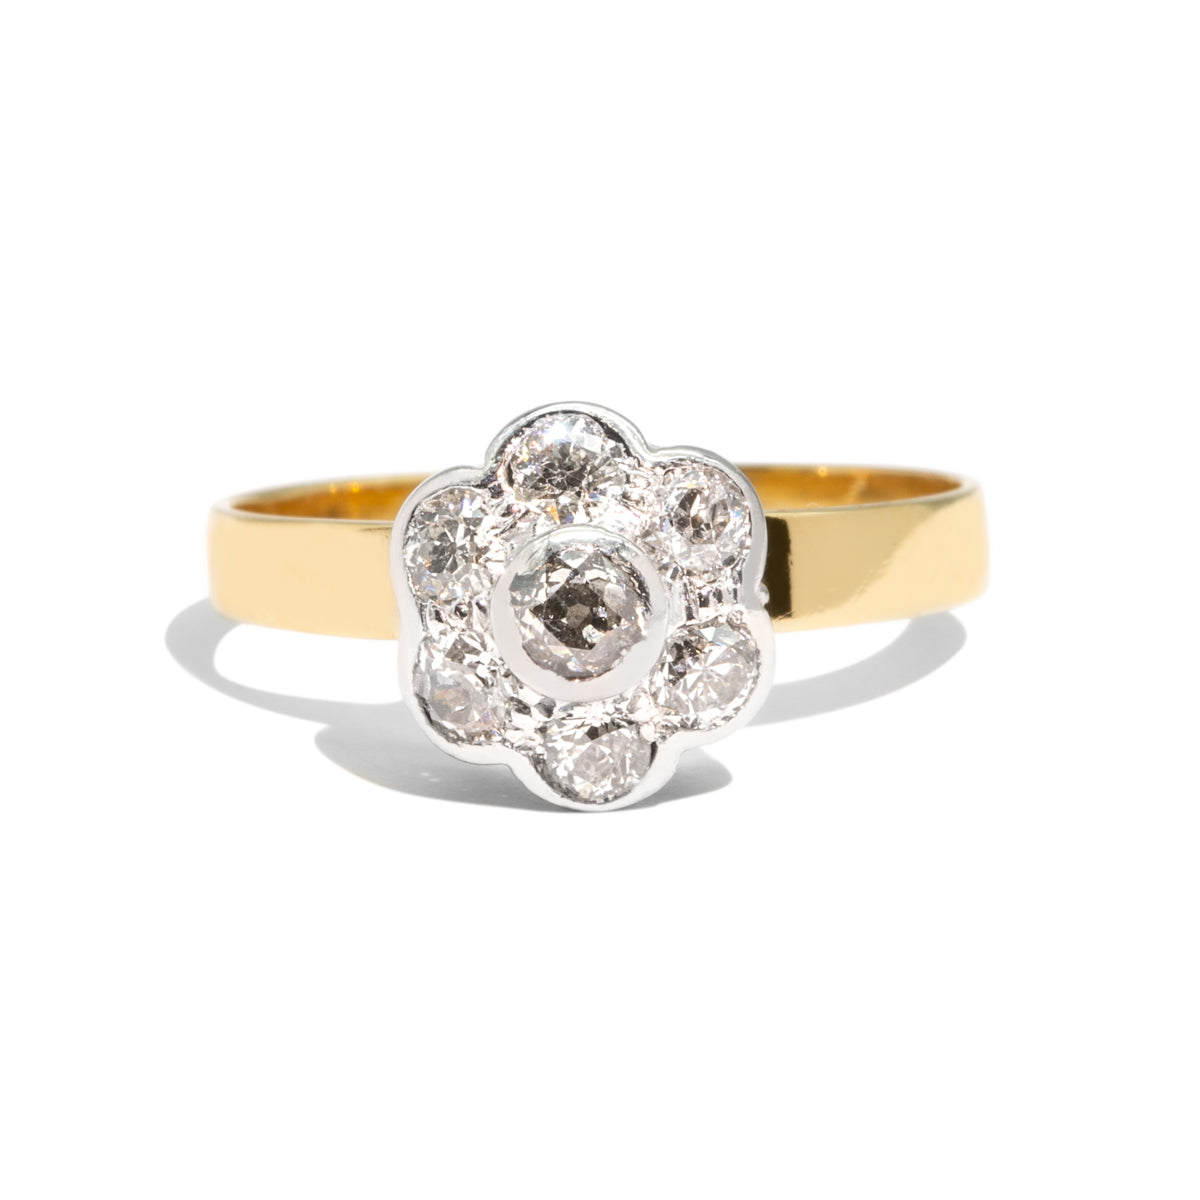 The Fleur Vintage Diamond Ring